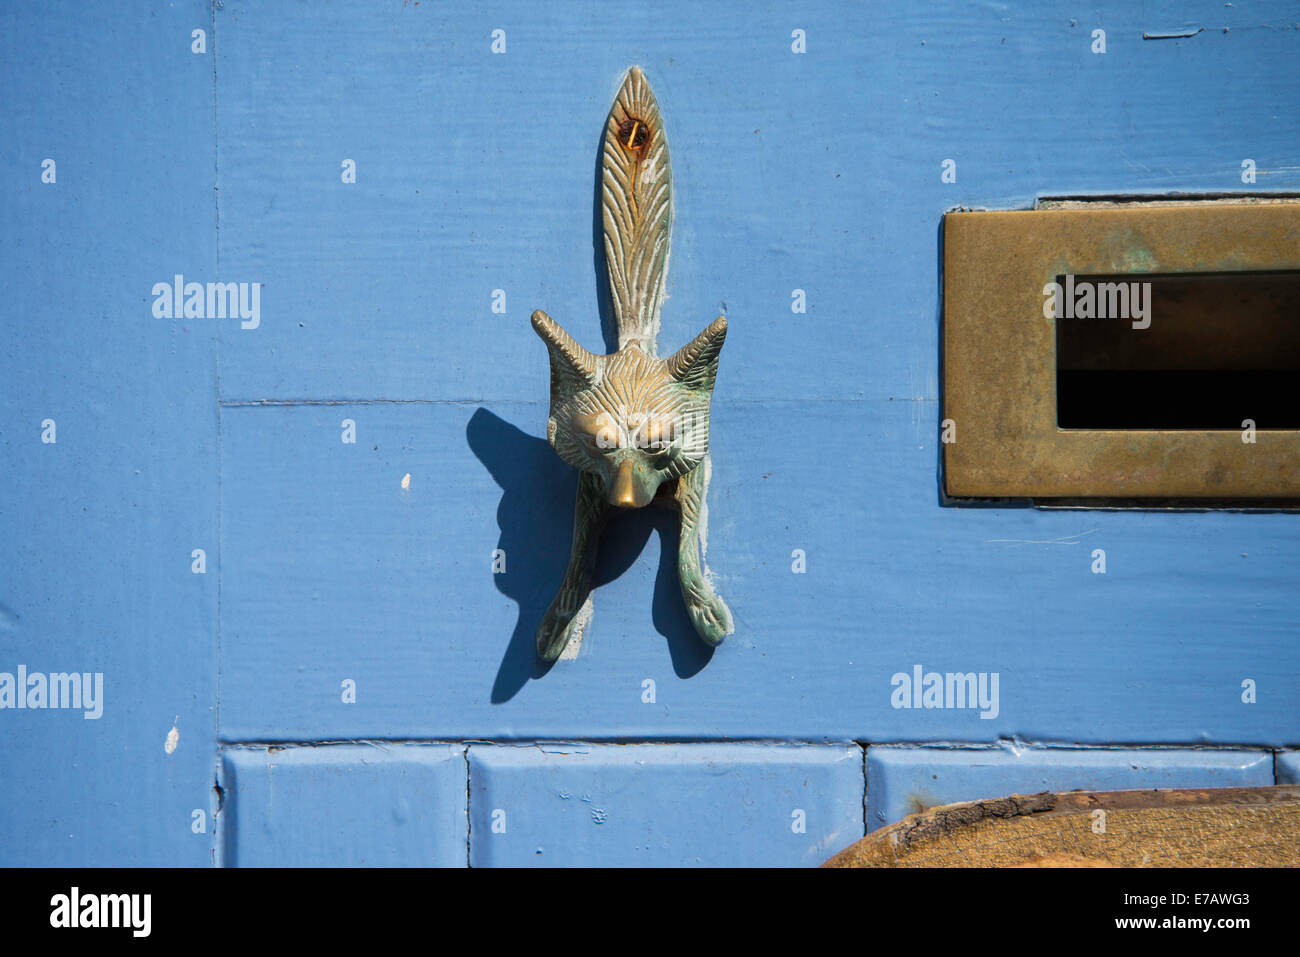 Turtle Door Knocker Door Knocker Uk Stock Photos Door Knocker Uk Stock Images Alamy